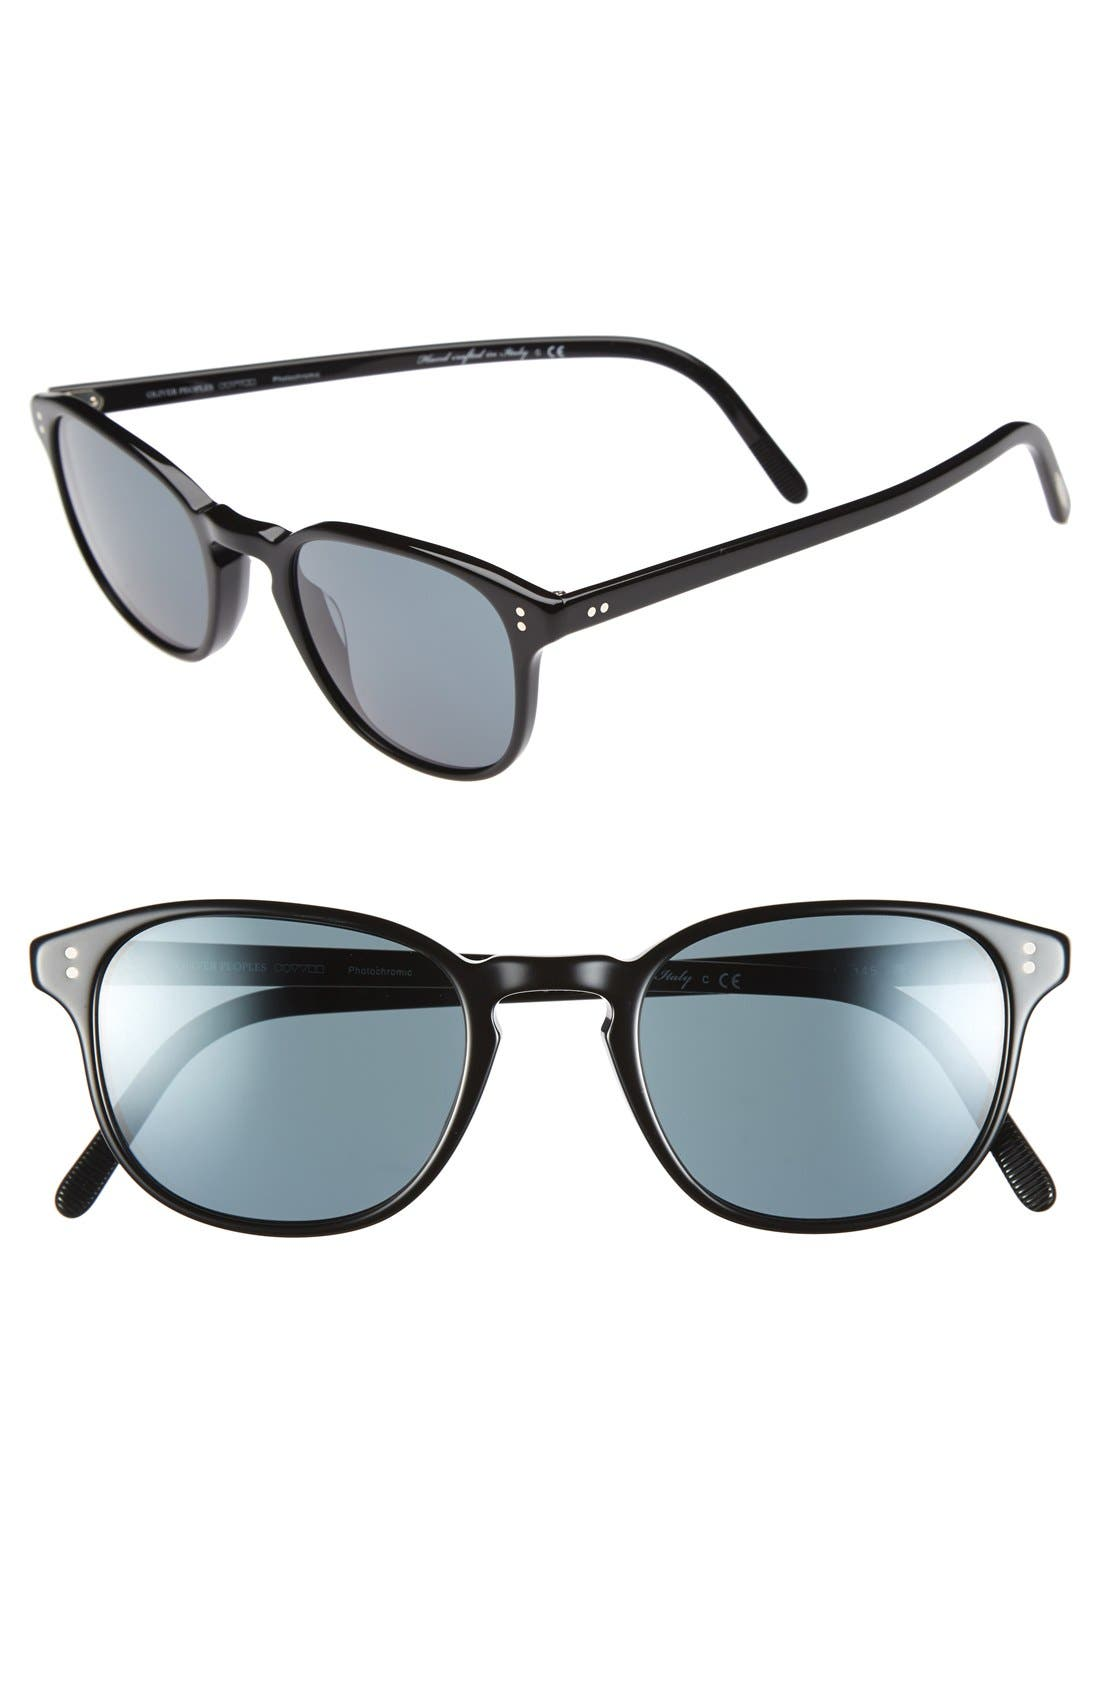 Alternate Image 1 Selected - Oliver Peoples 'Fairmont' 49mm Sunglasses